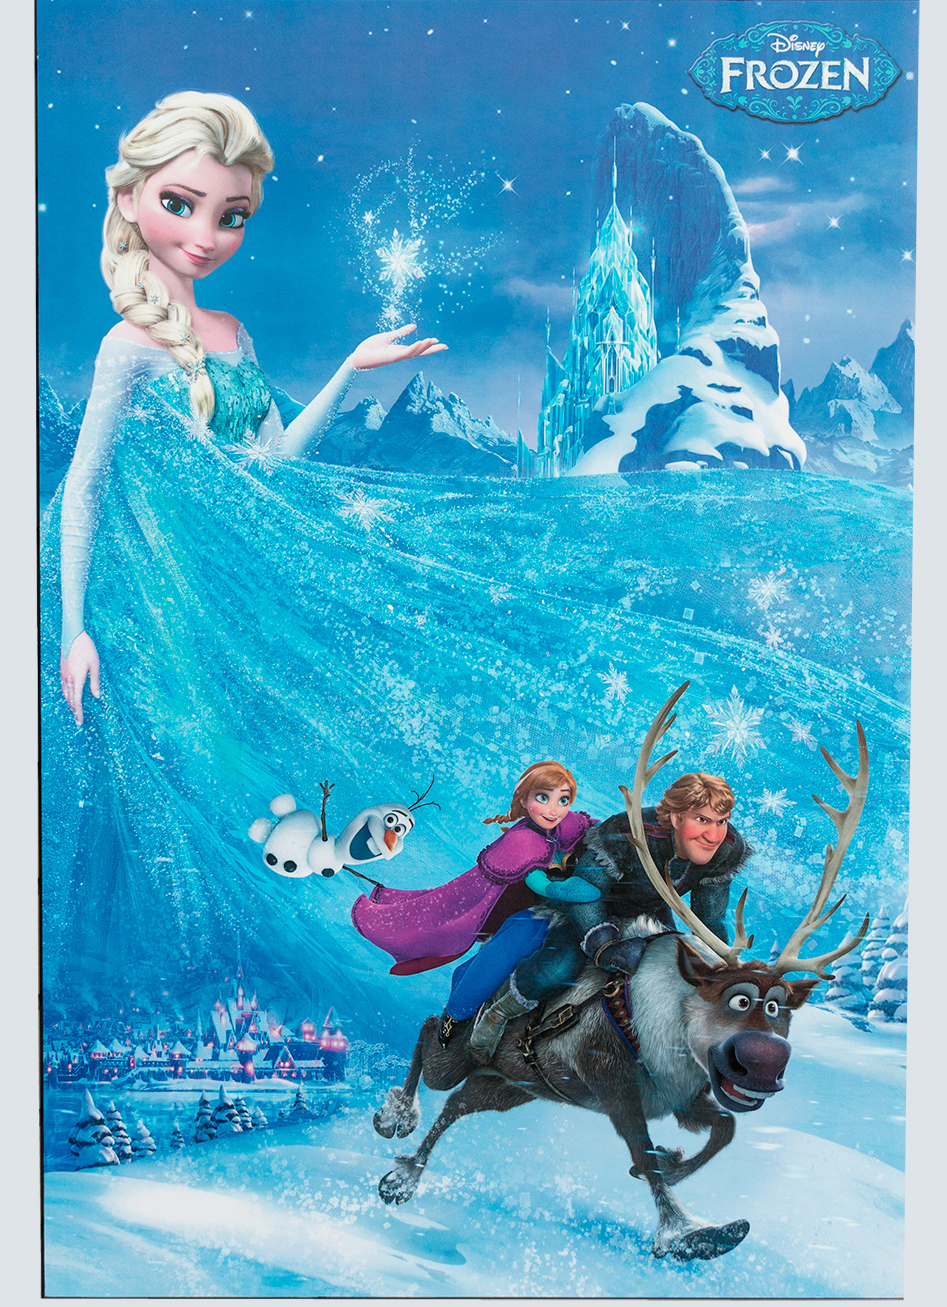 Plaque mounted poster from the Disney movie Frozen